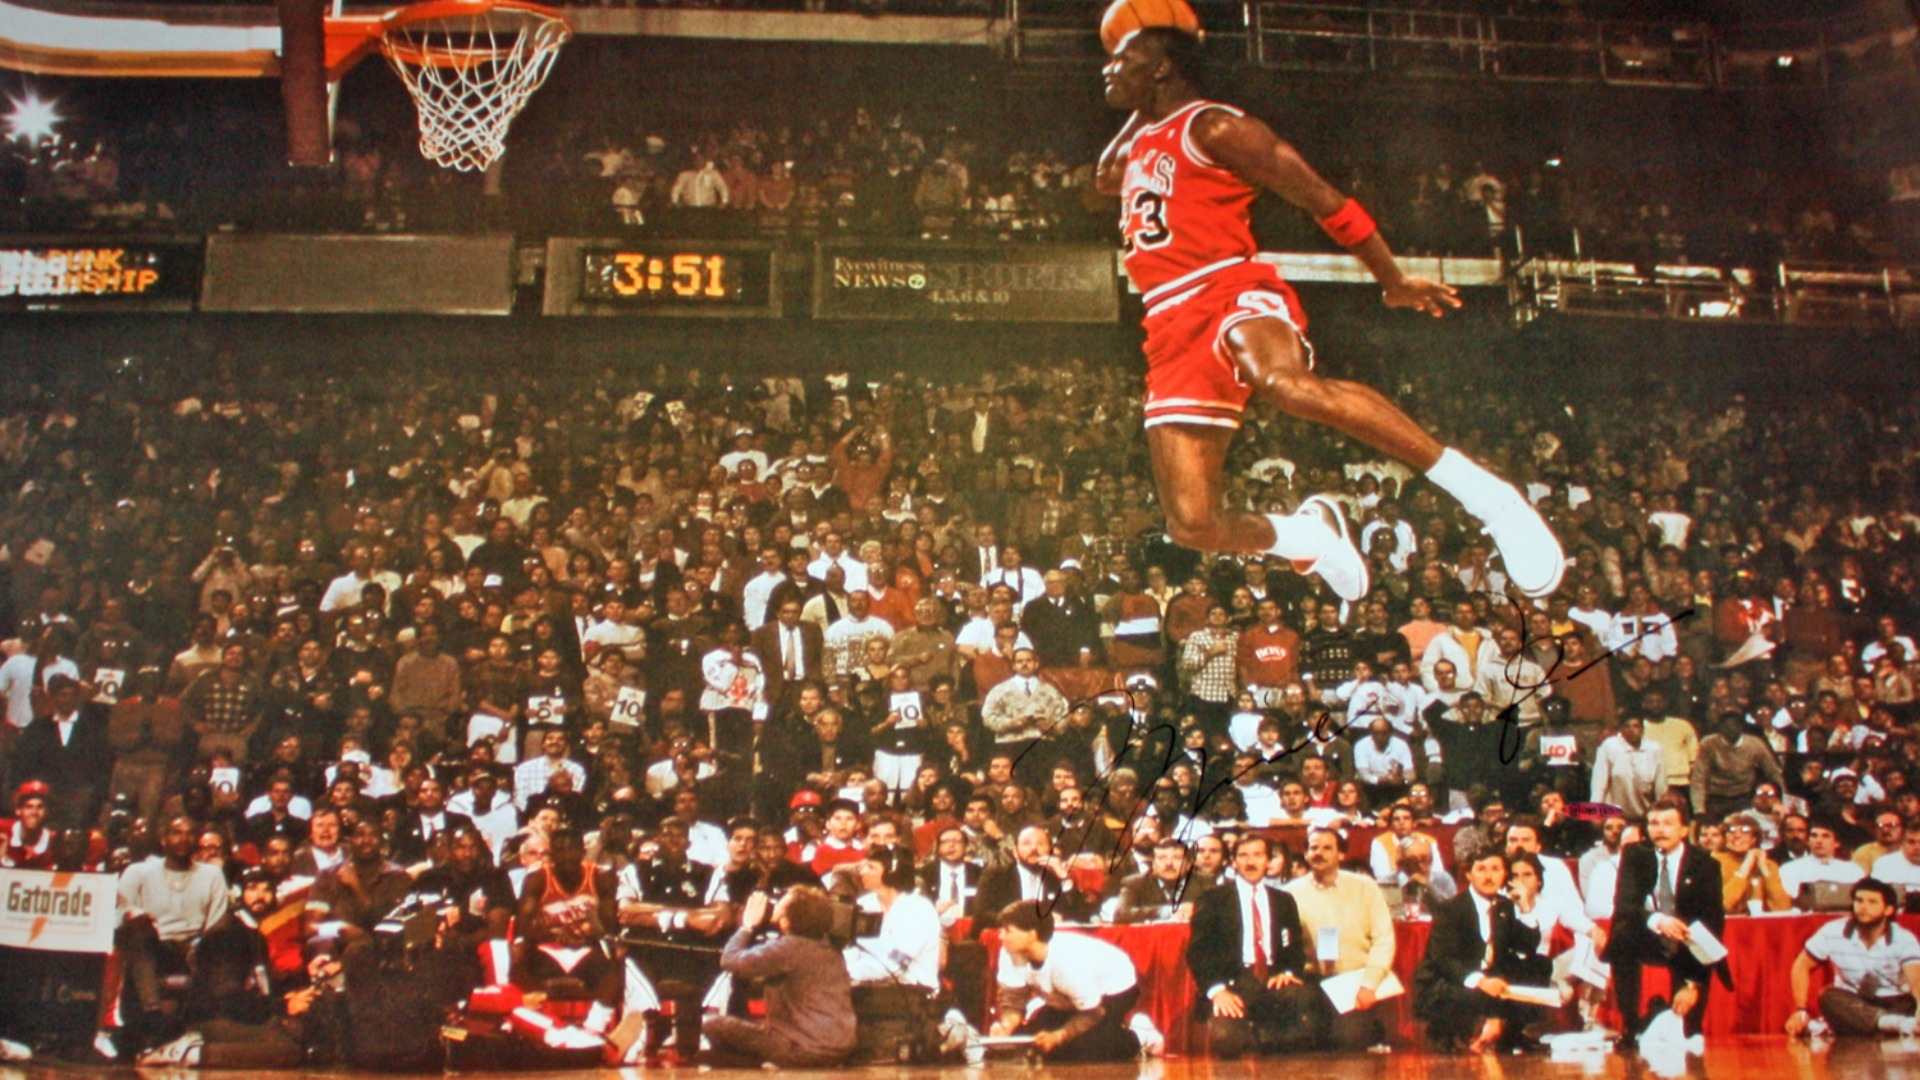 THE NBA All-Star weekend is always around the corner. Here are the top 10 dunks of all time from the competition.